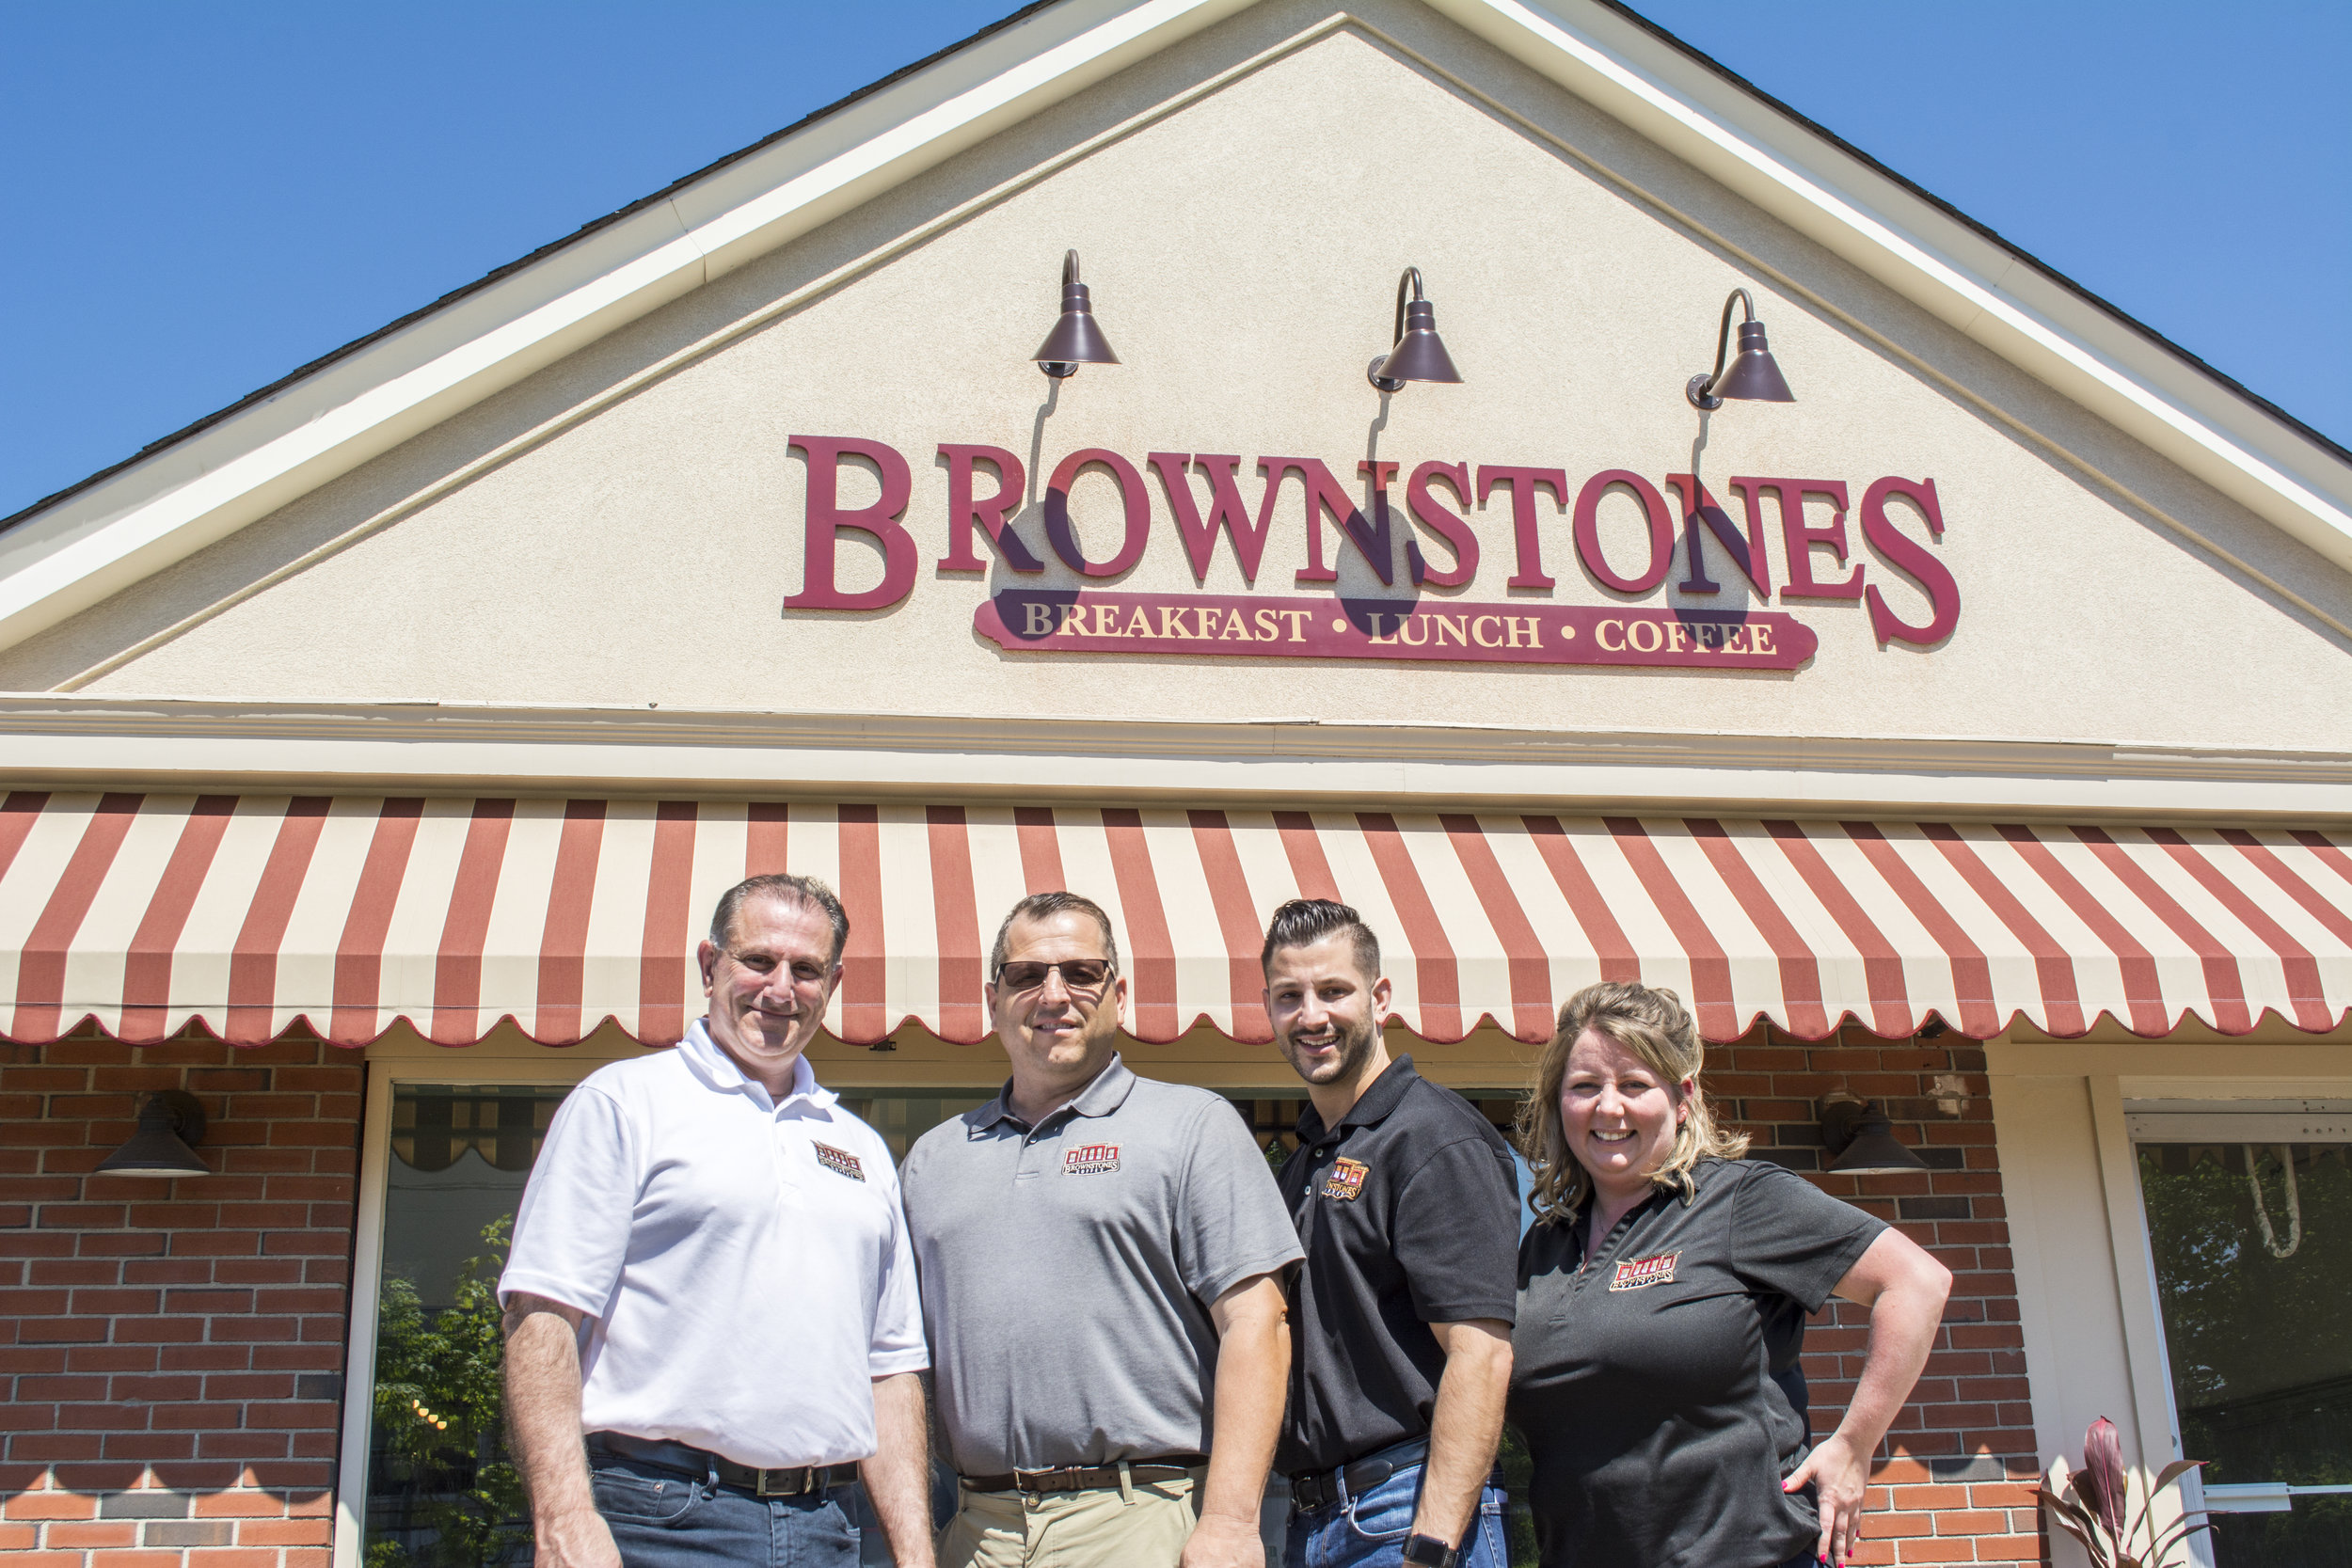 Brownstones partners, from left: Manny Kourounis, John Mangino, Chris Kourounis and Christina Walberg stand outside the local chain's newest location in East Northport.   (Long Islander News photos/Connor Beach)